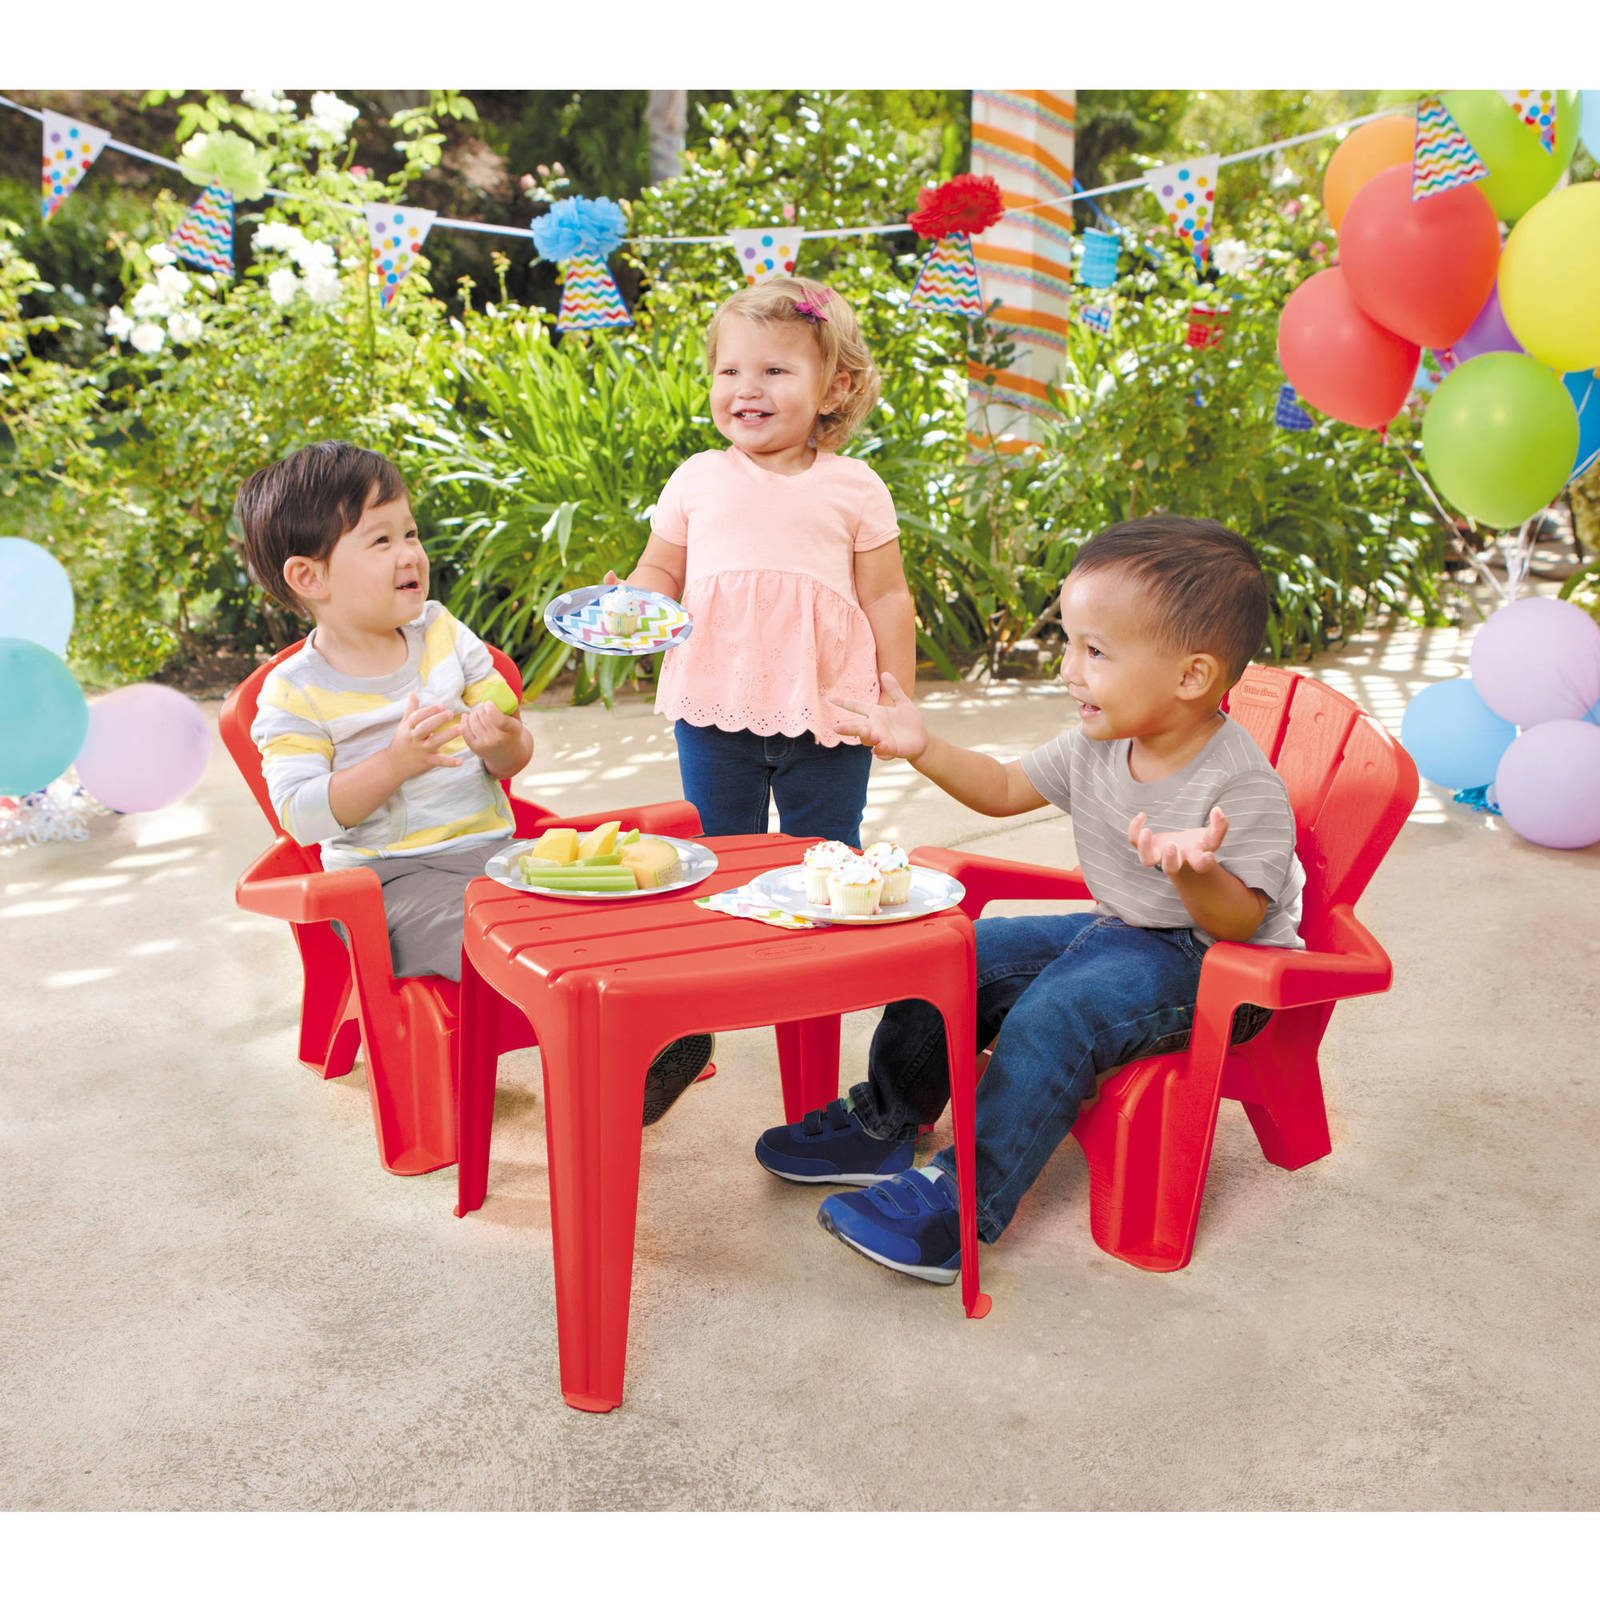 Kids Outdoor Table And Chairs Kids Play Set Adirondack Chair Table Baby Child Patio Yard